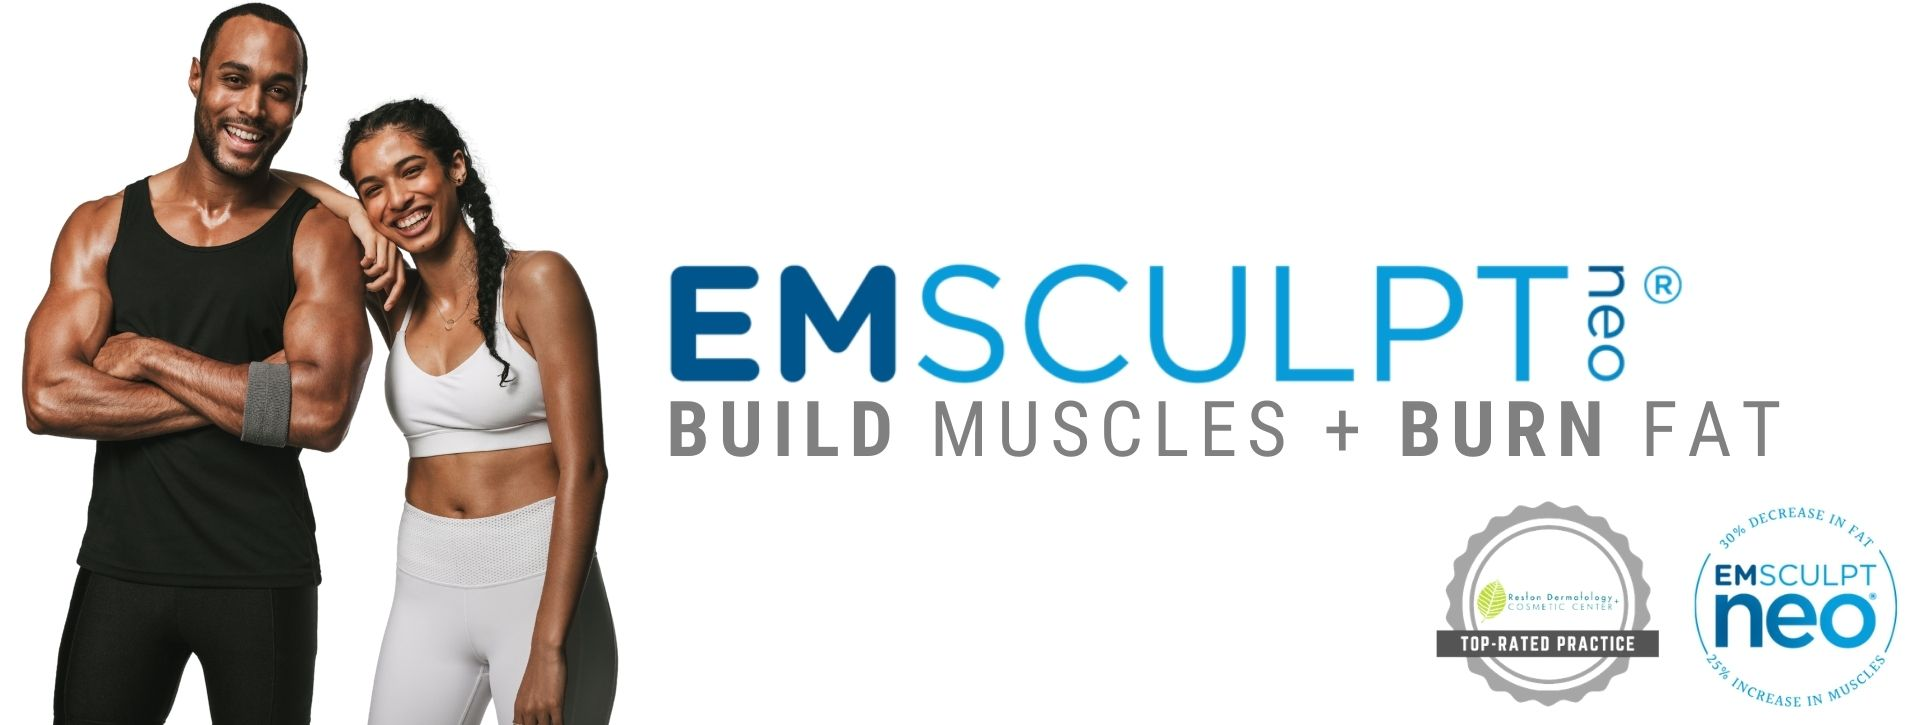 Portrait of two fit couple smiling promoting Emsculpt NEO treatment in Reston